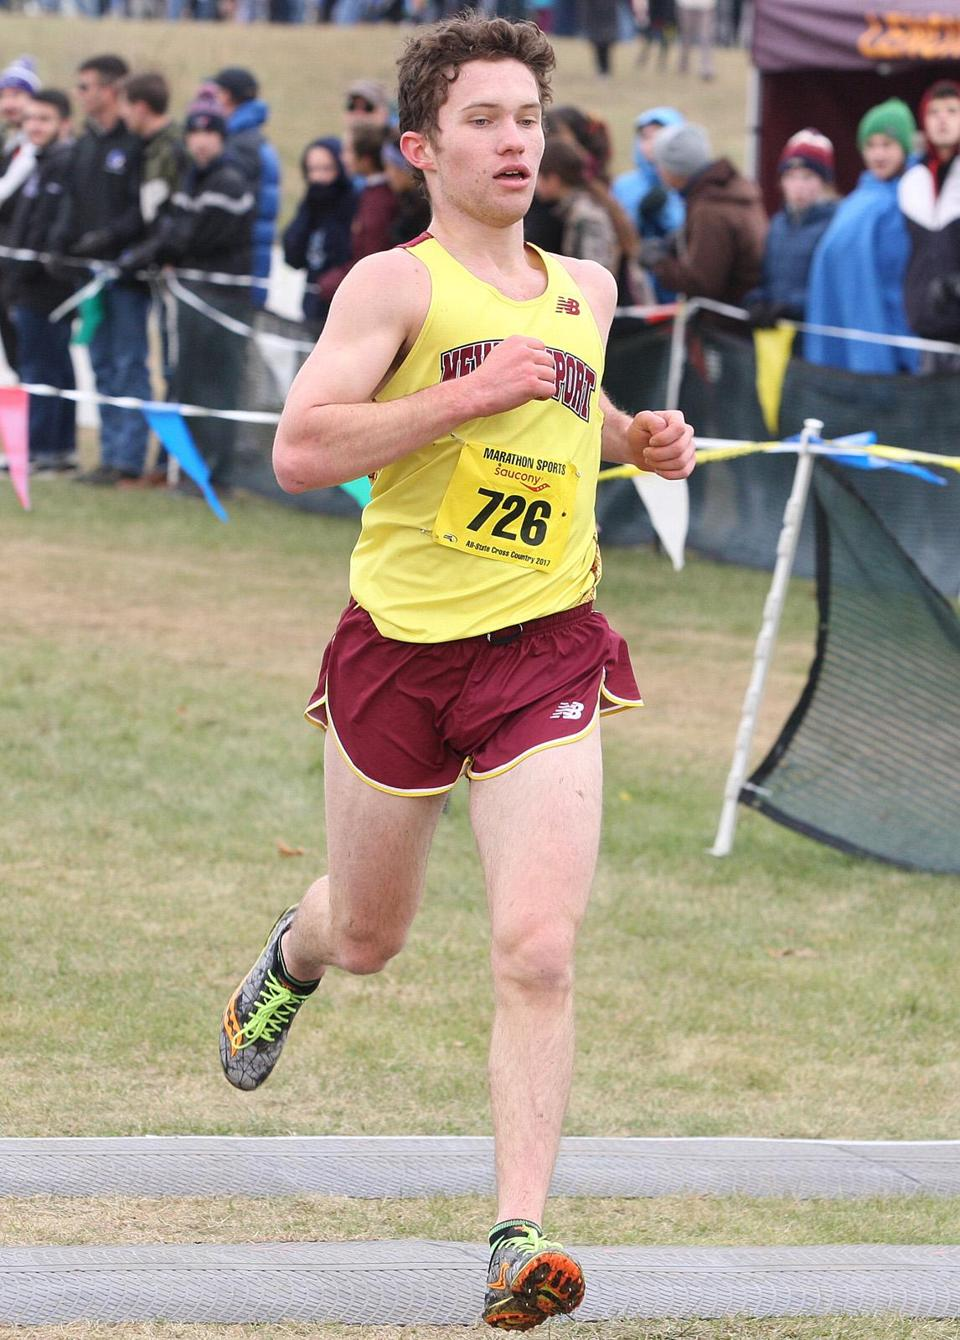 Sam Acquaviva of Newburyport won the Division 2 race.